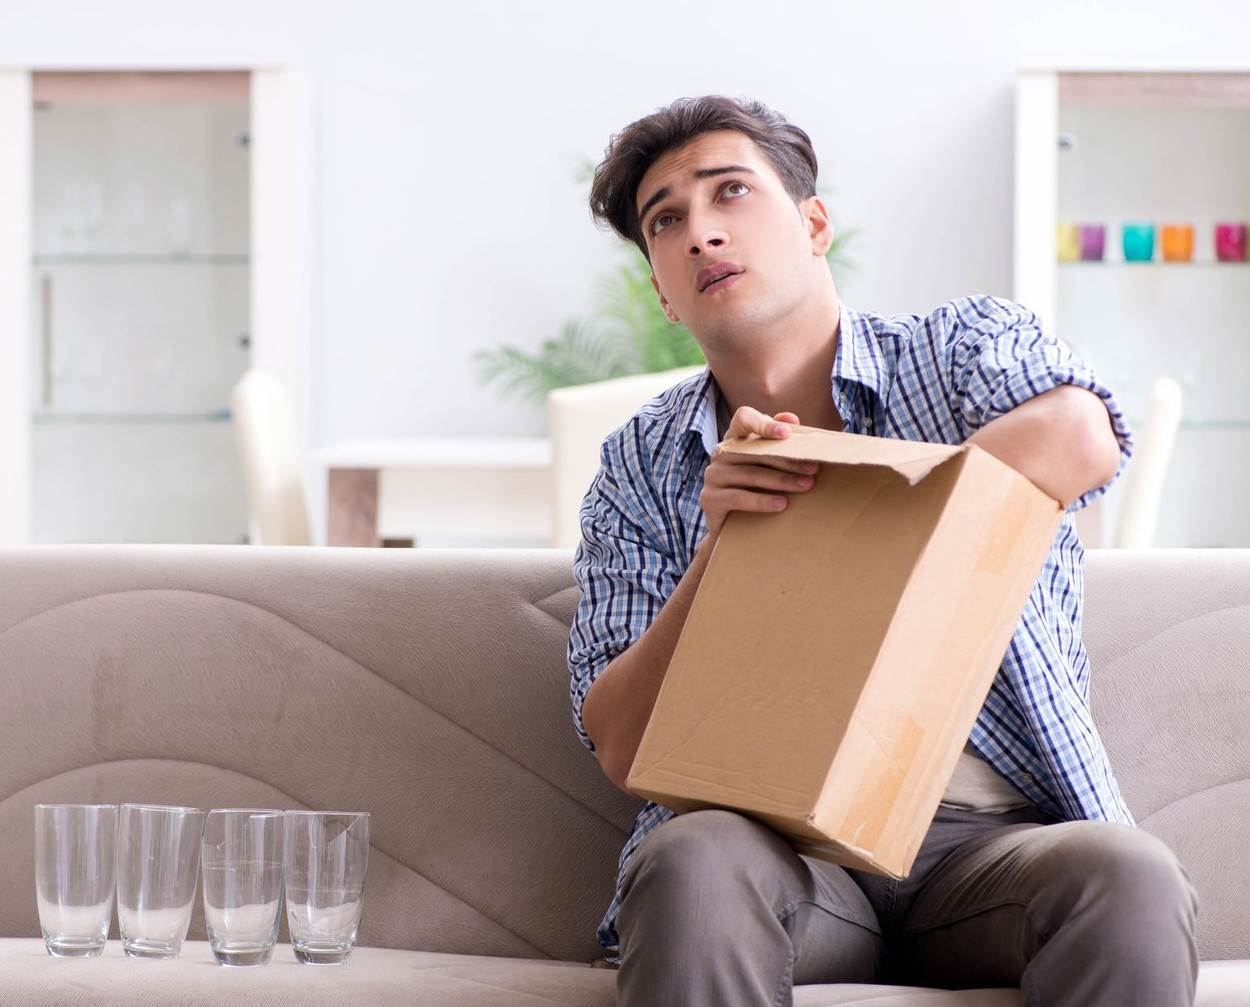 box;business;businessman;buying;carton;case;christmas;delivering;delivery;disappointed;dissatisfied;ecommerce;error;frustrated;gift;glass;glasses;home;house;internet;logistics;mail;man;mistake;online;opening;order;ordering;package;packet;parcel;post;postal;postbox;present;problem;purchase;receiving;sale;service;shipment;shipping;shopper;shopping;surprise;unboxing;unpacking;work;wrong;xmas